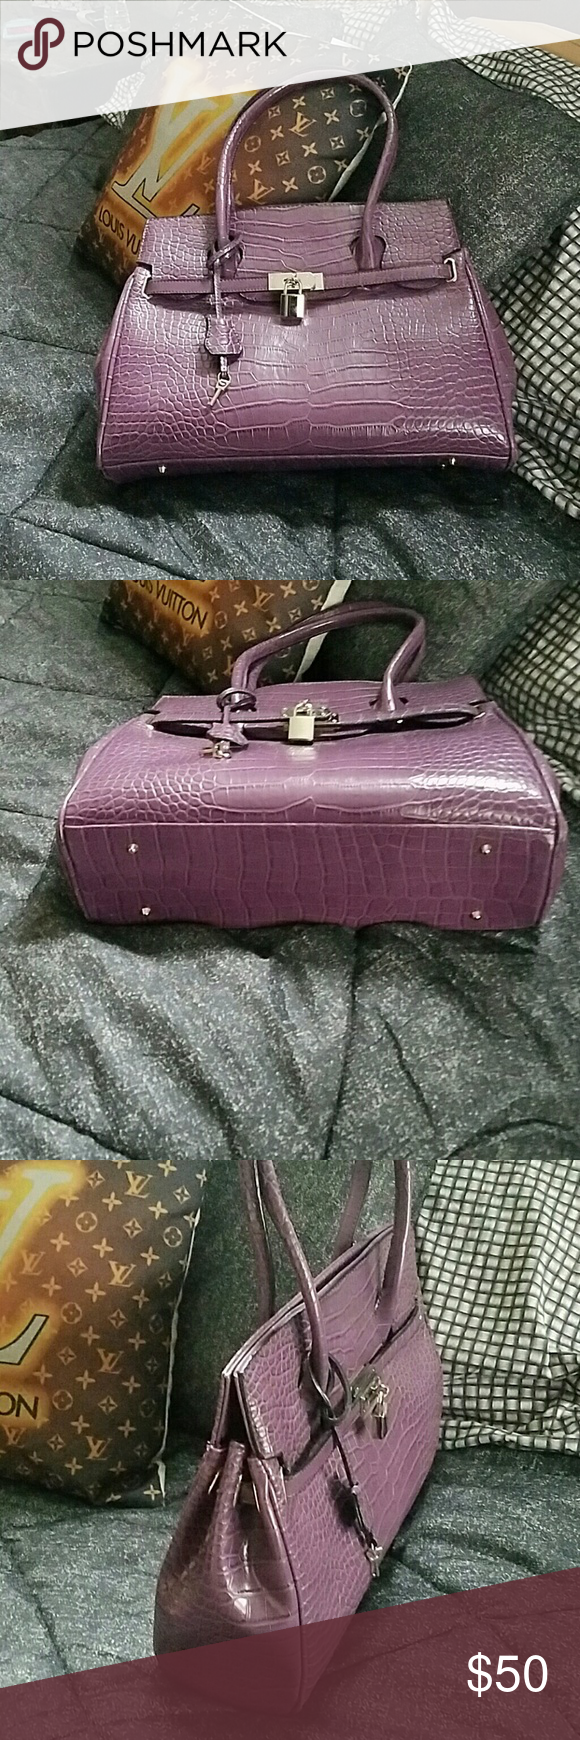 Faux leather New bag with silver hardware, reposhing  to small for me Bags Satchels